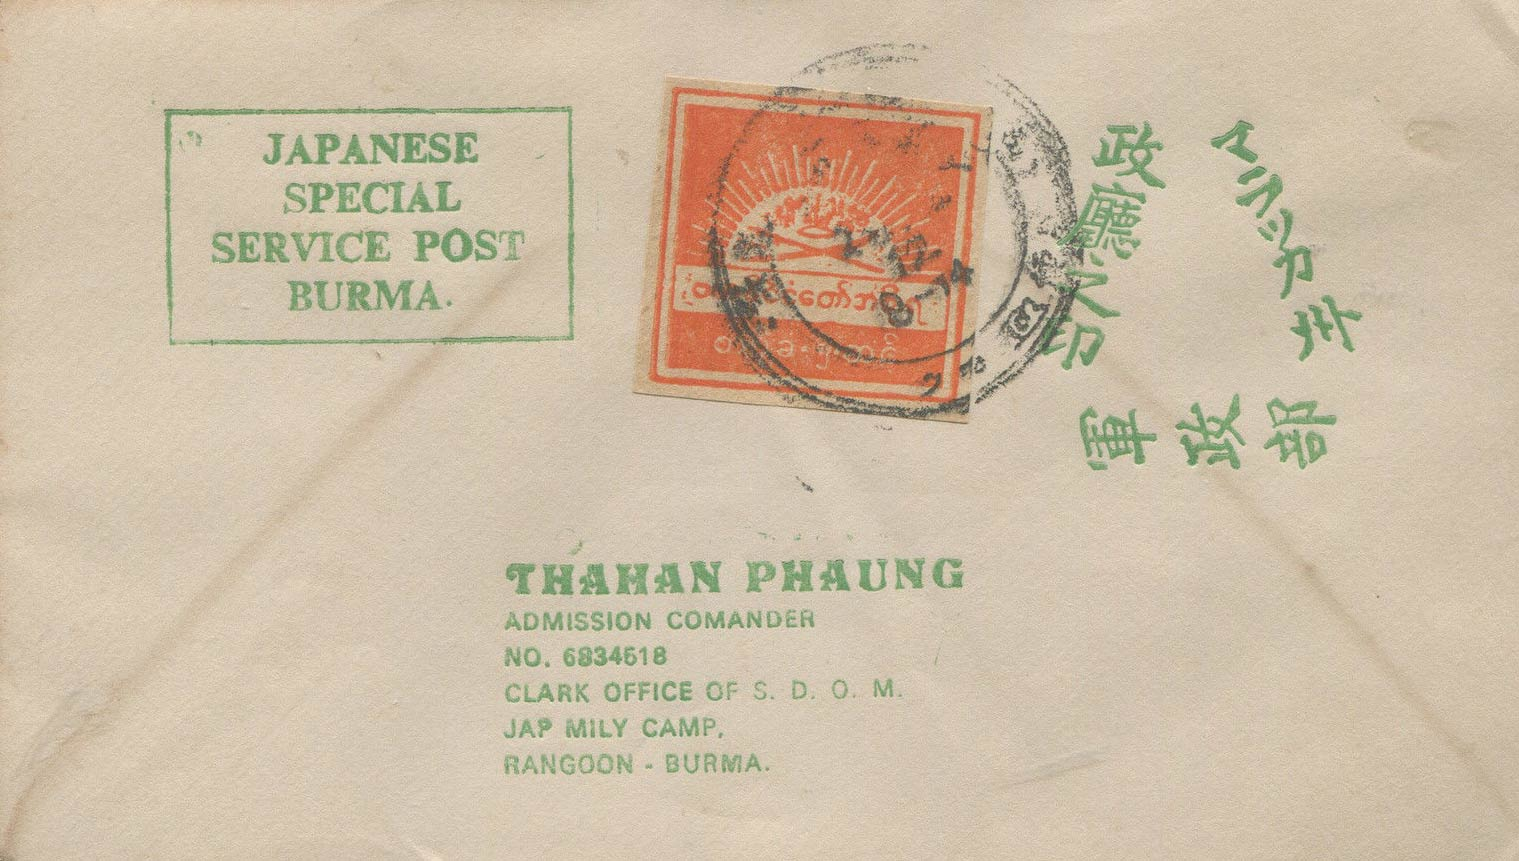 Burma_Japanese-Special-Service-Post_Cover_Forgery10